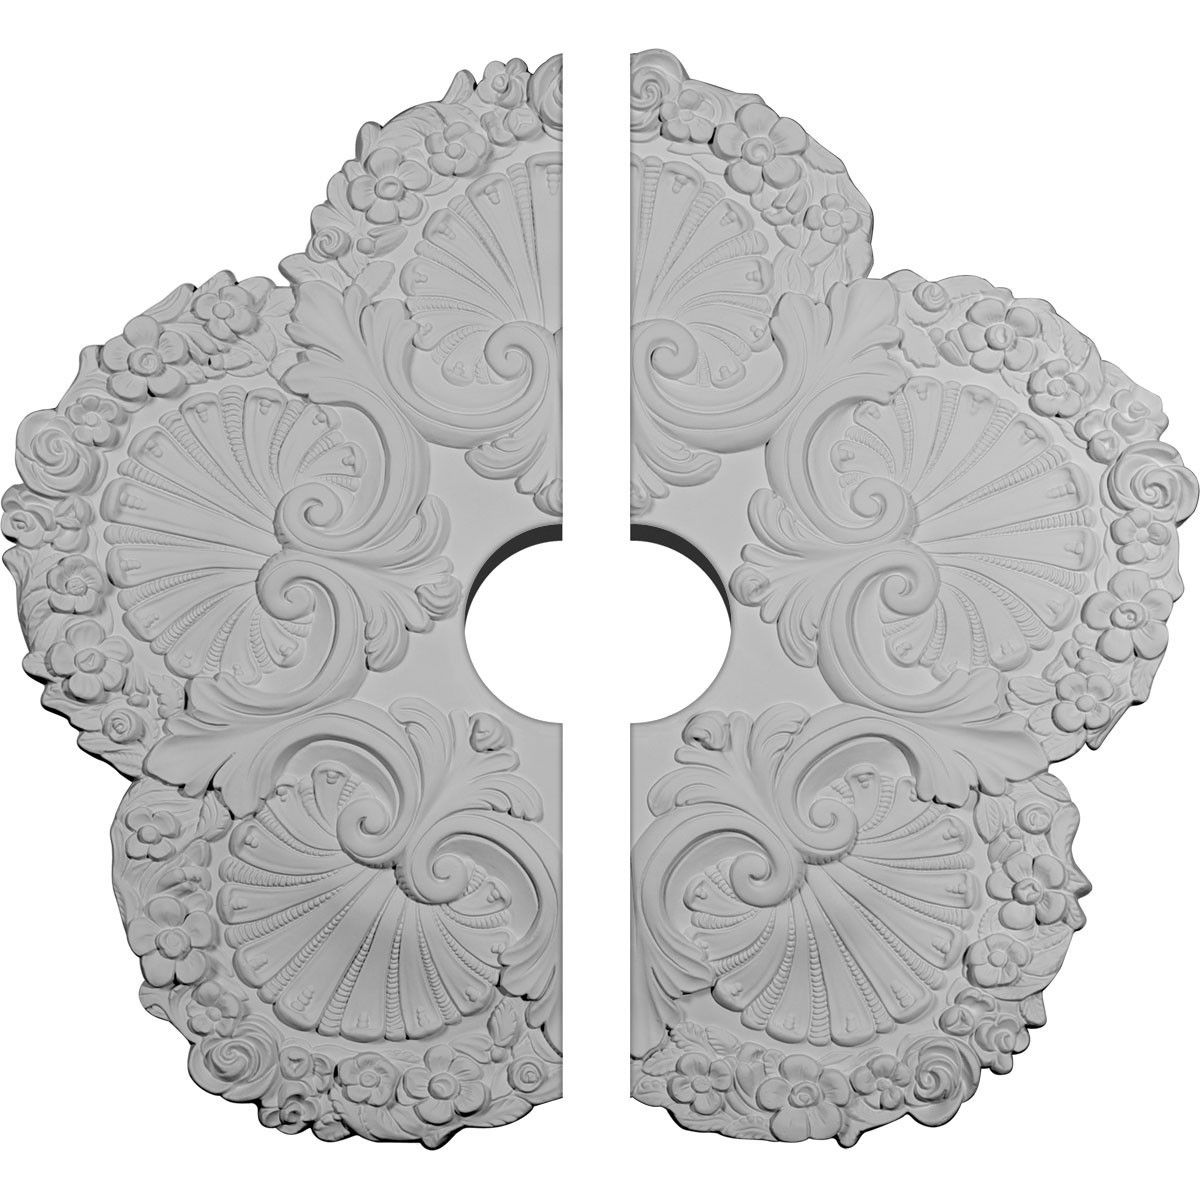 """EM-CM25SH2-04500 - 25 5/8""""OD x 4 1/2""""ID x 1""""P Shell Ceiling Medallion, Two Piece (Fits Canopies up to 4 1/2"""")"""